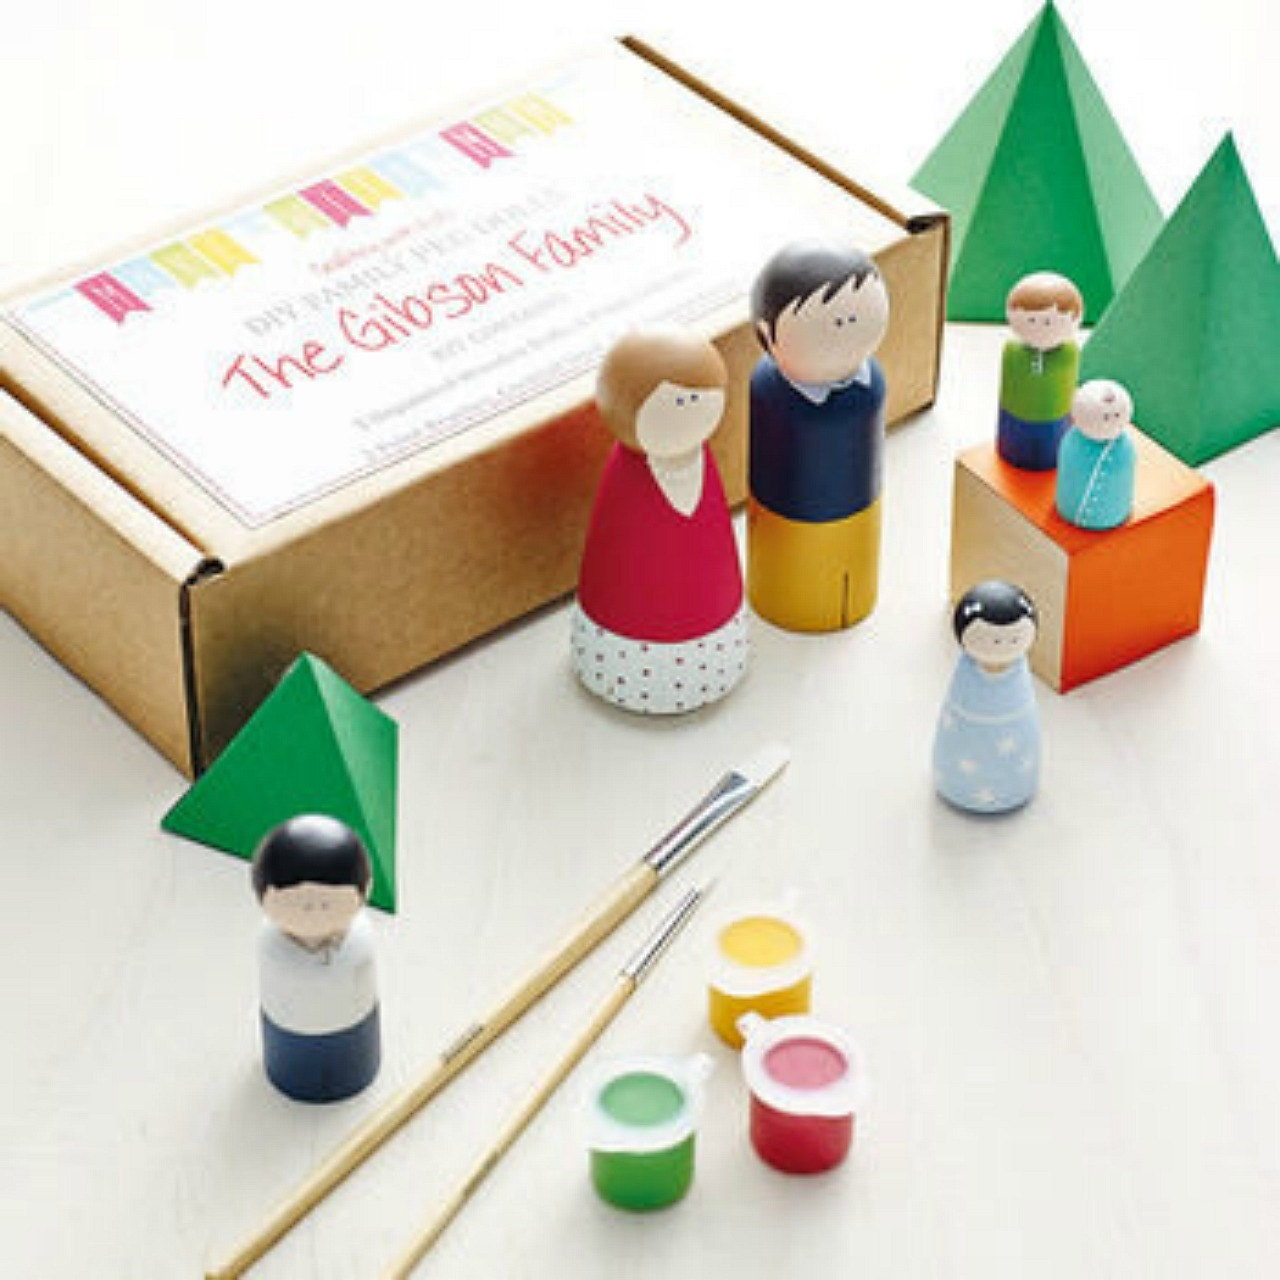 Peg doll kit family of 4 wooden dolls kids craft kit diy for Wood craft ideas for kids